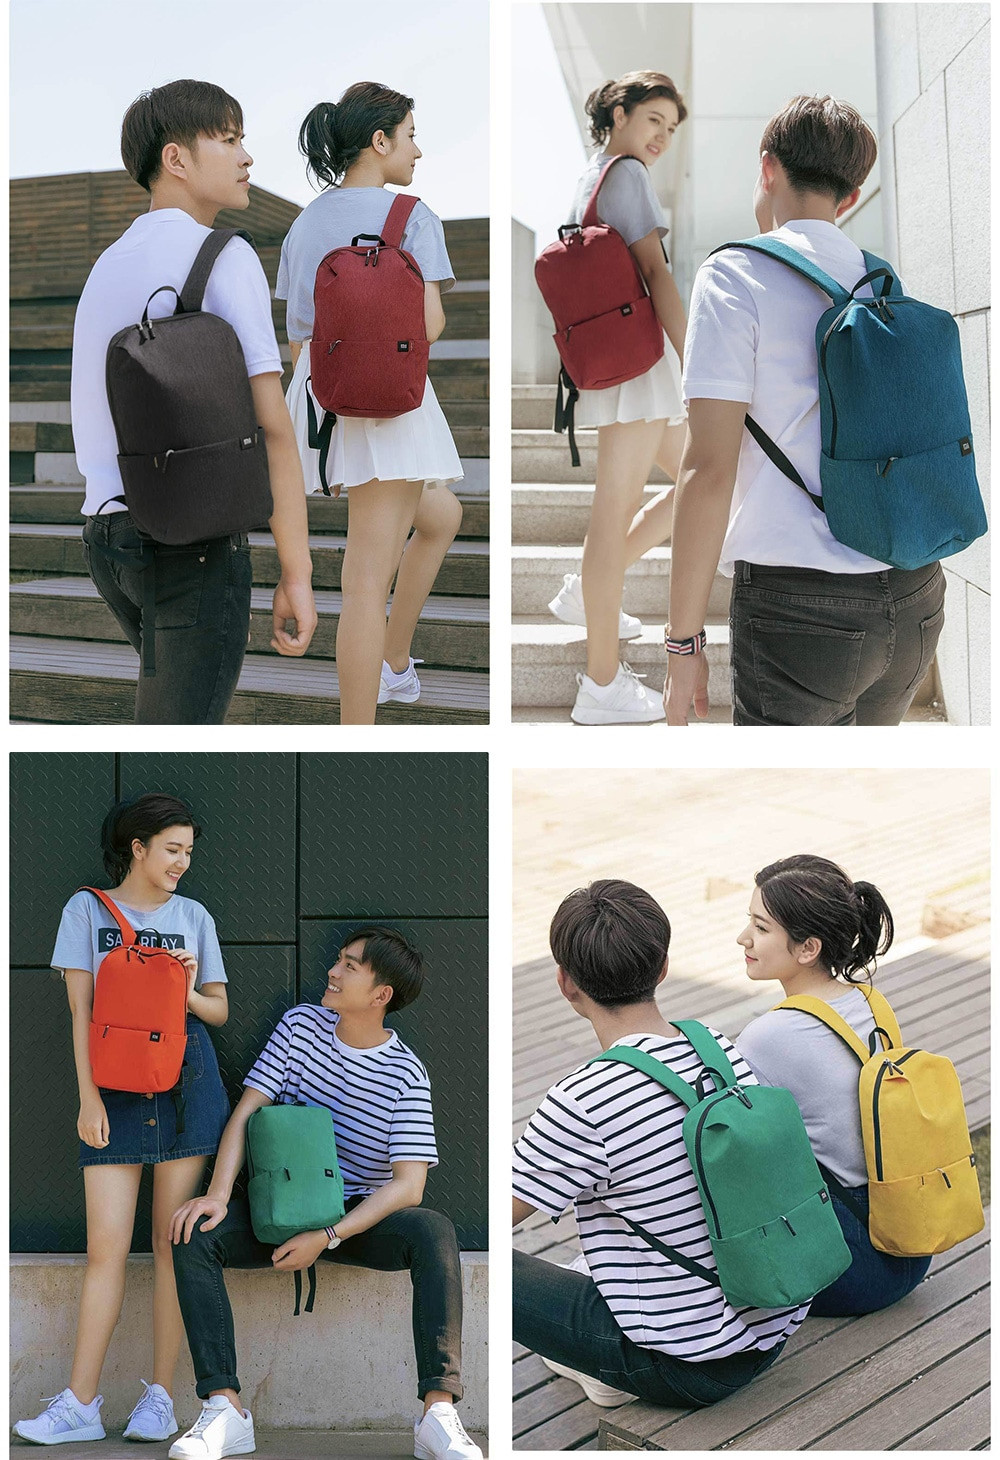 For Xiaomi colorful small backpack Unisex Rucksack Casual Bag for Traveling- Algae Green